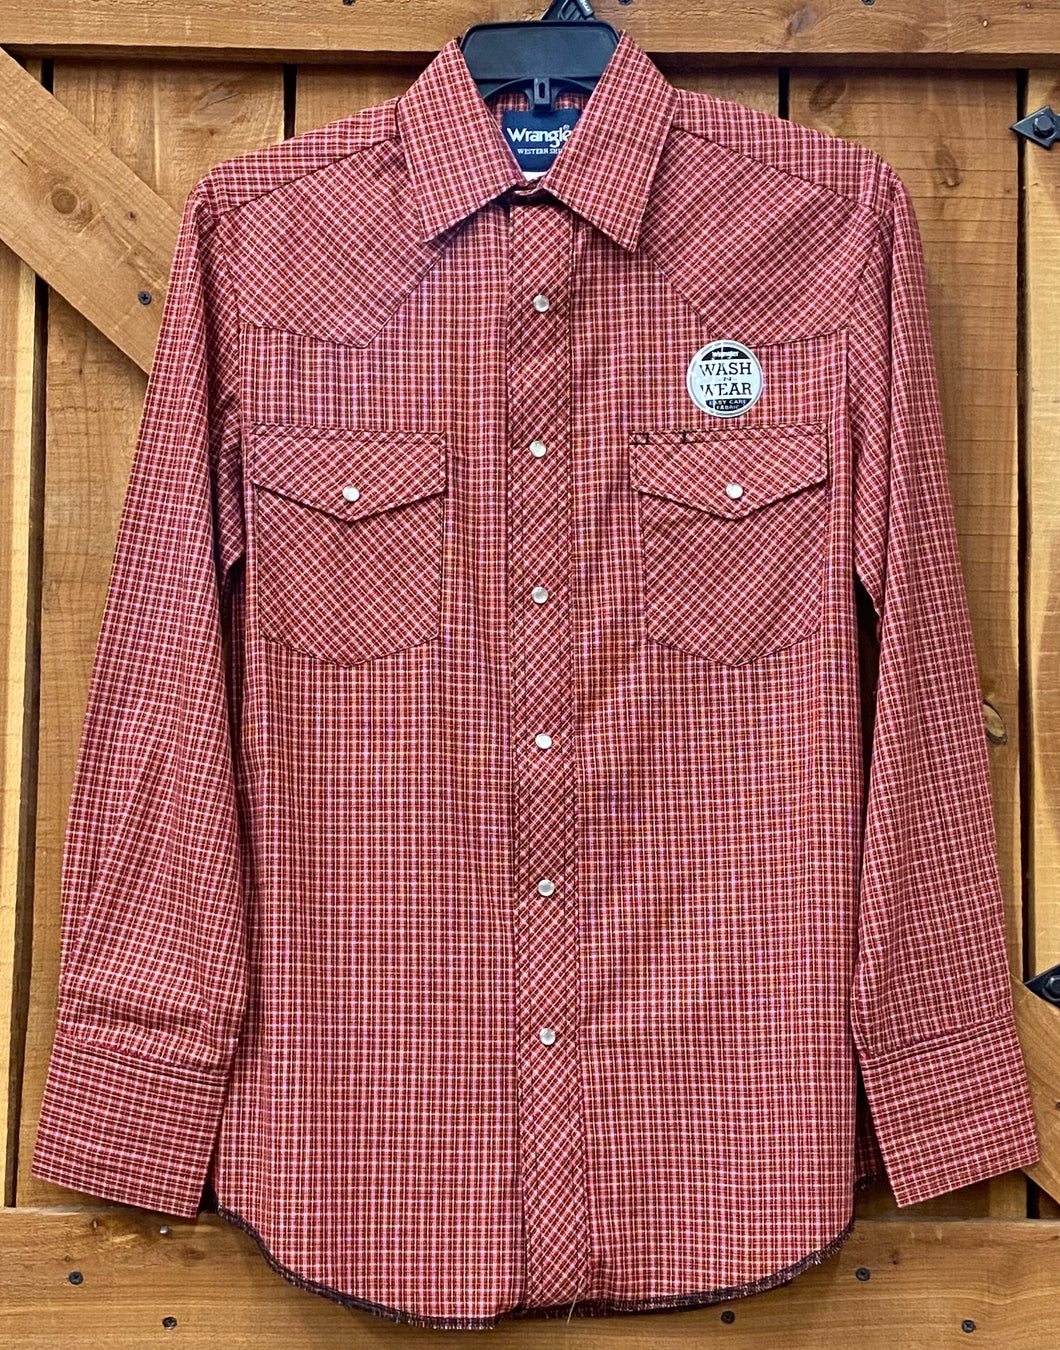 Wrangler Long Sleeve Plaid Shirt